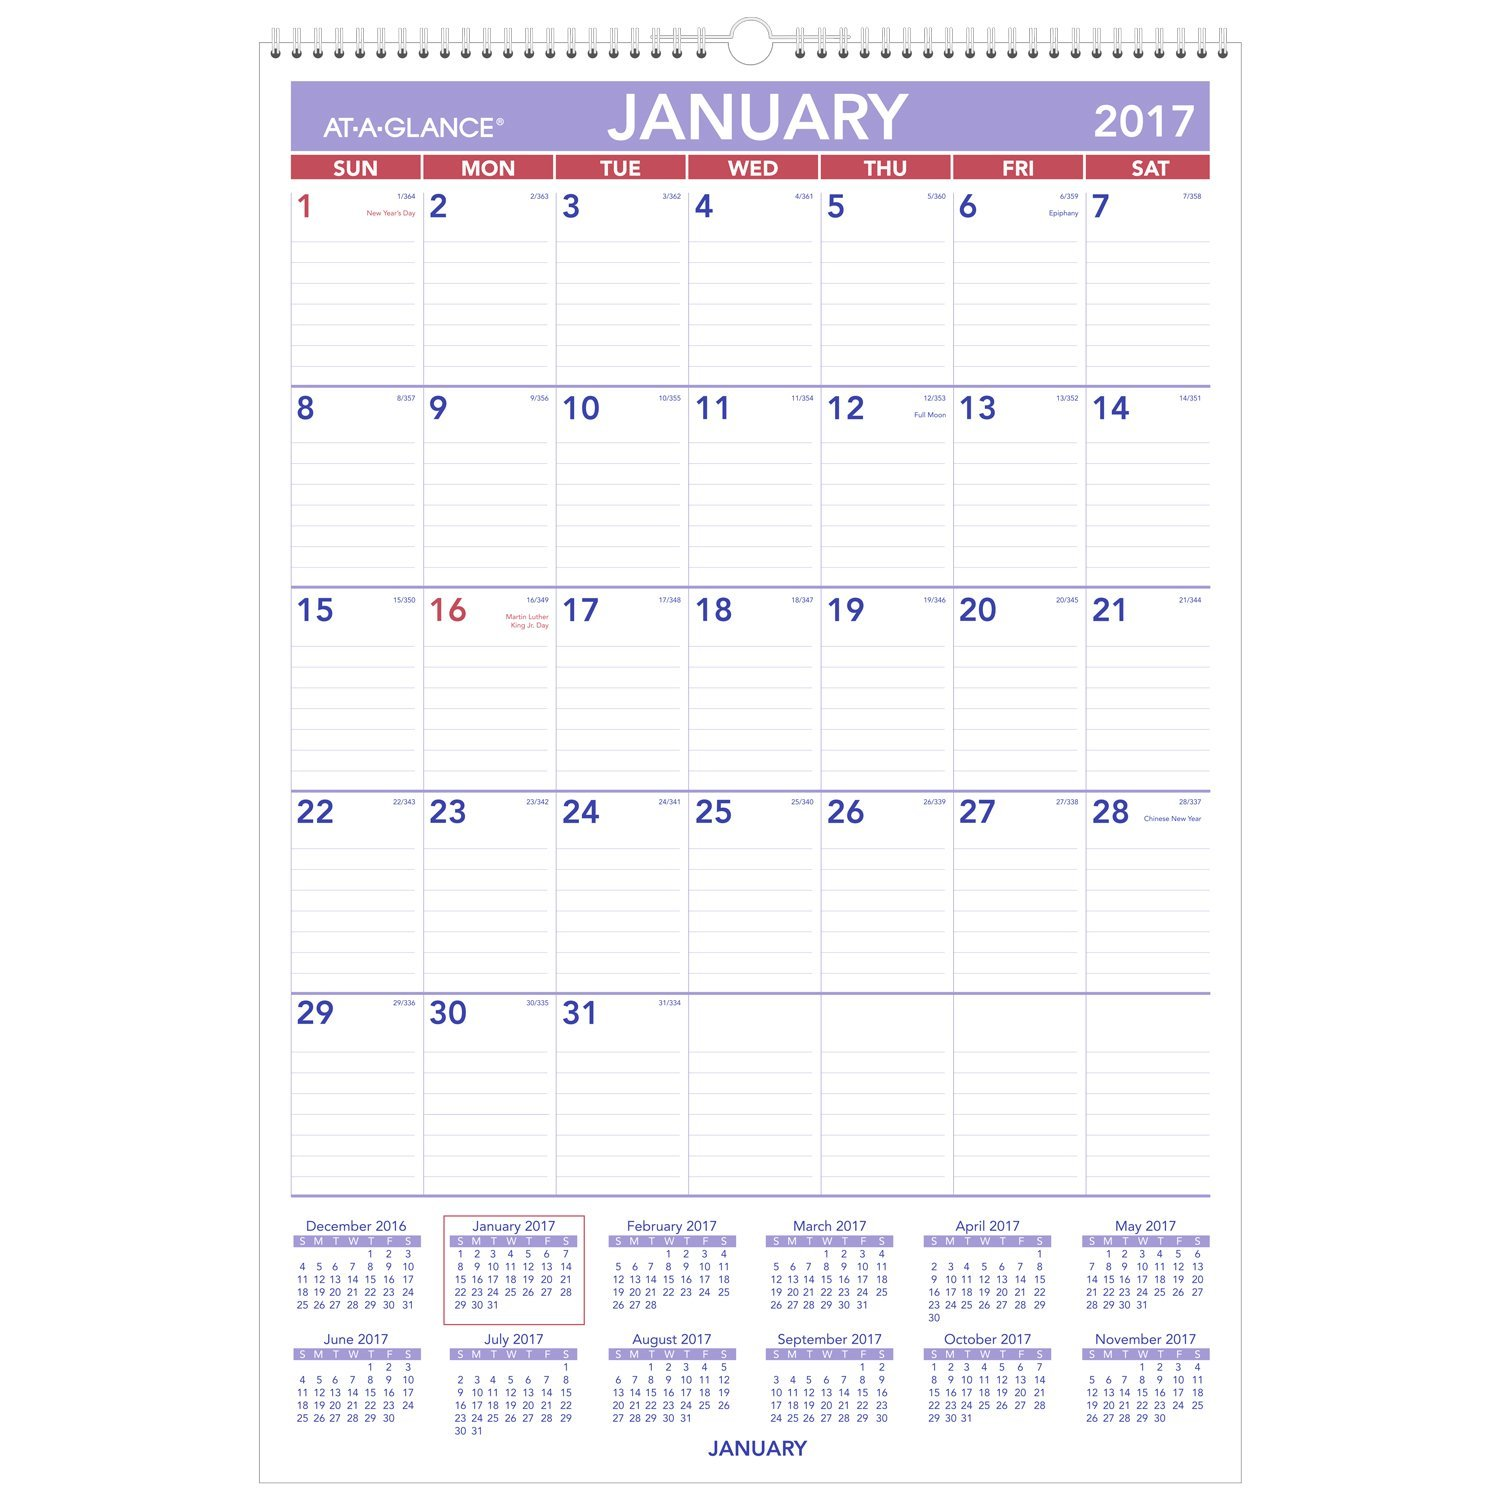 amazon com at a glance wall calendar 2017 monthly 15 1 2 x 22 3